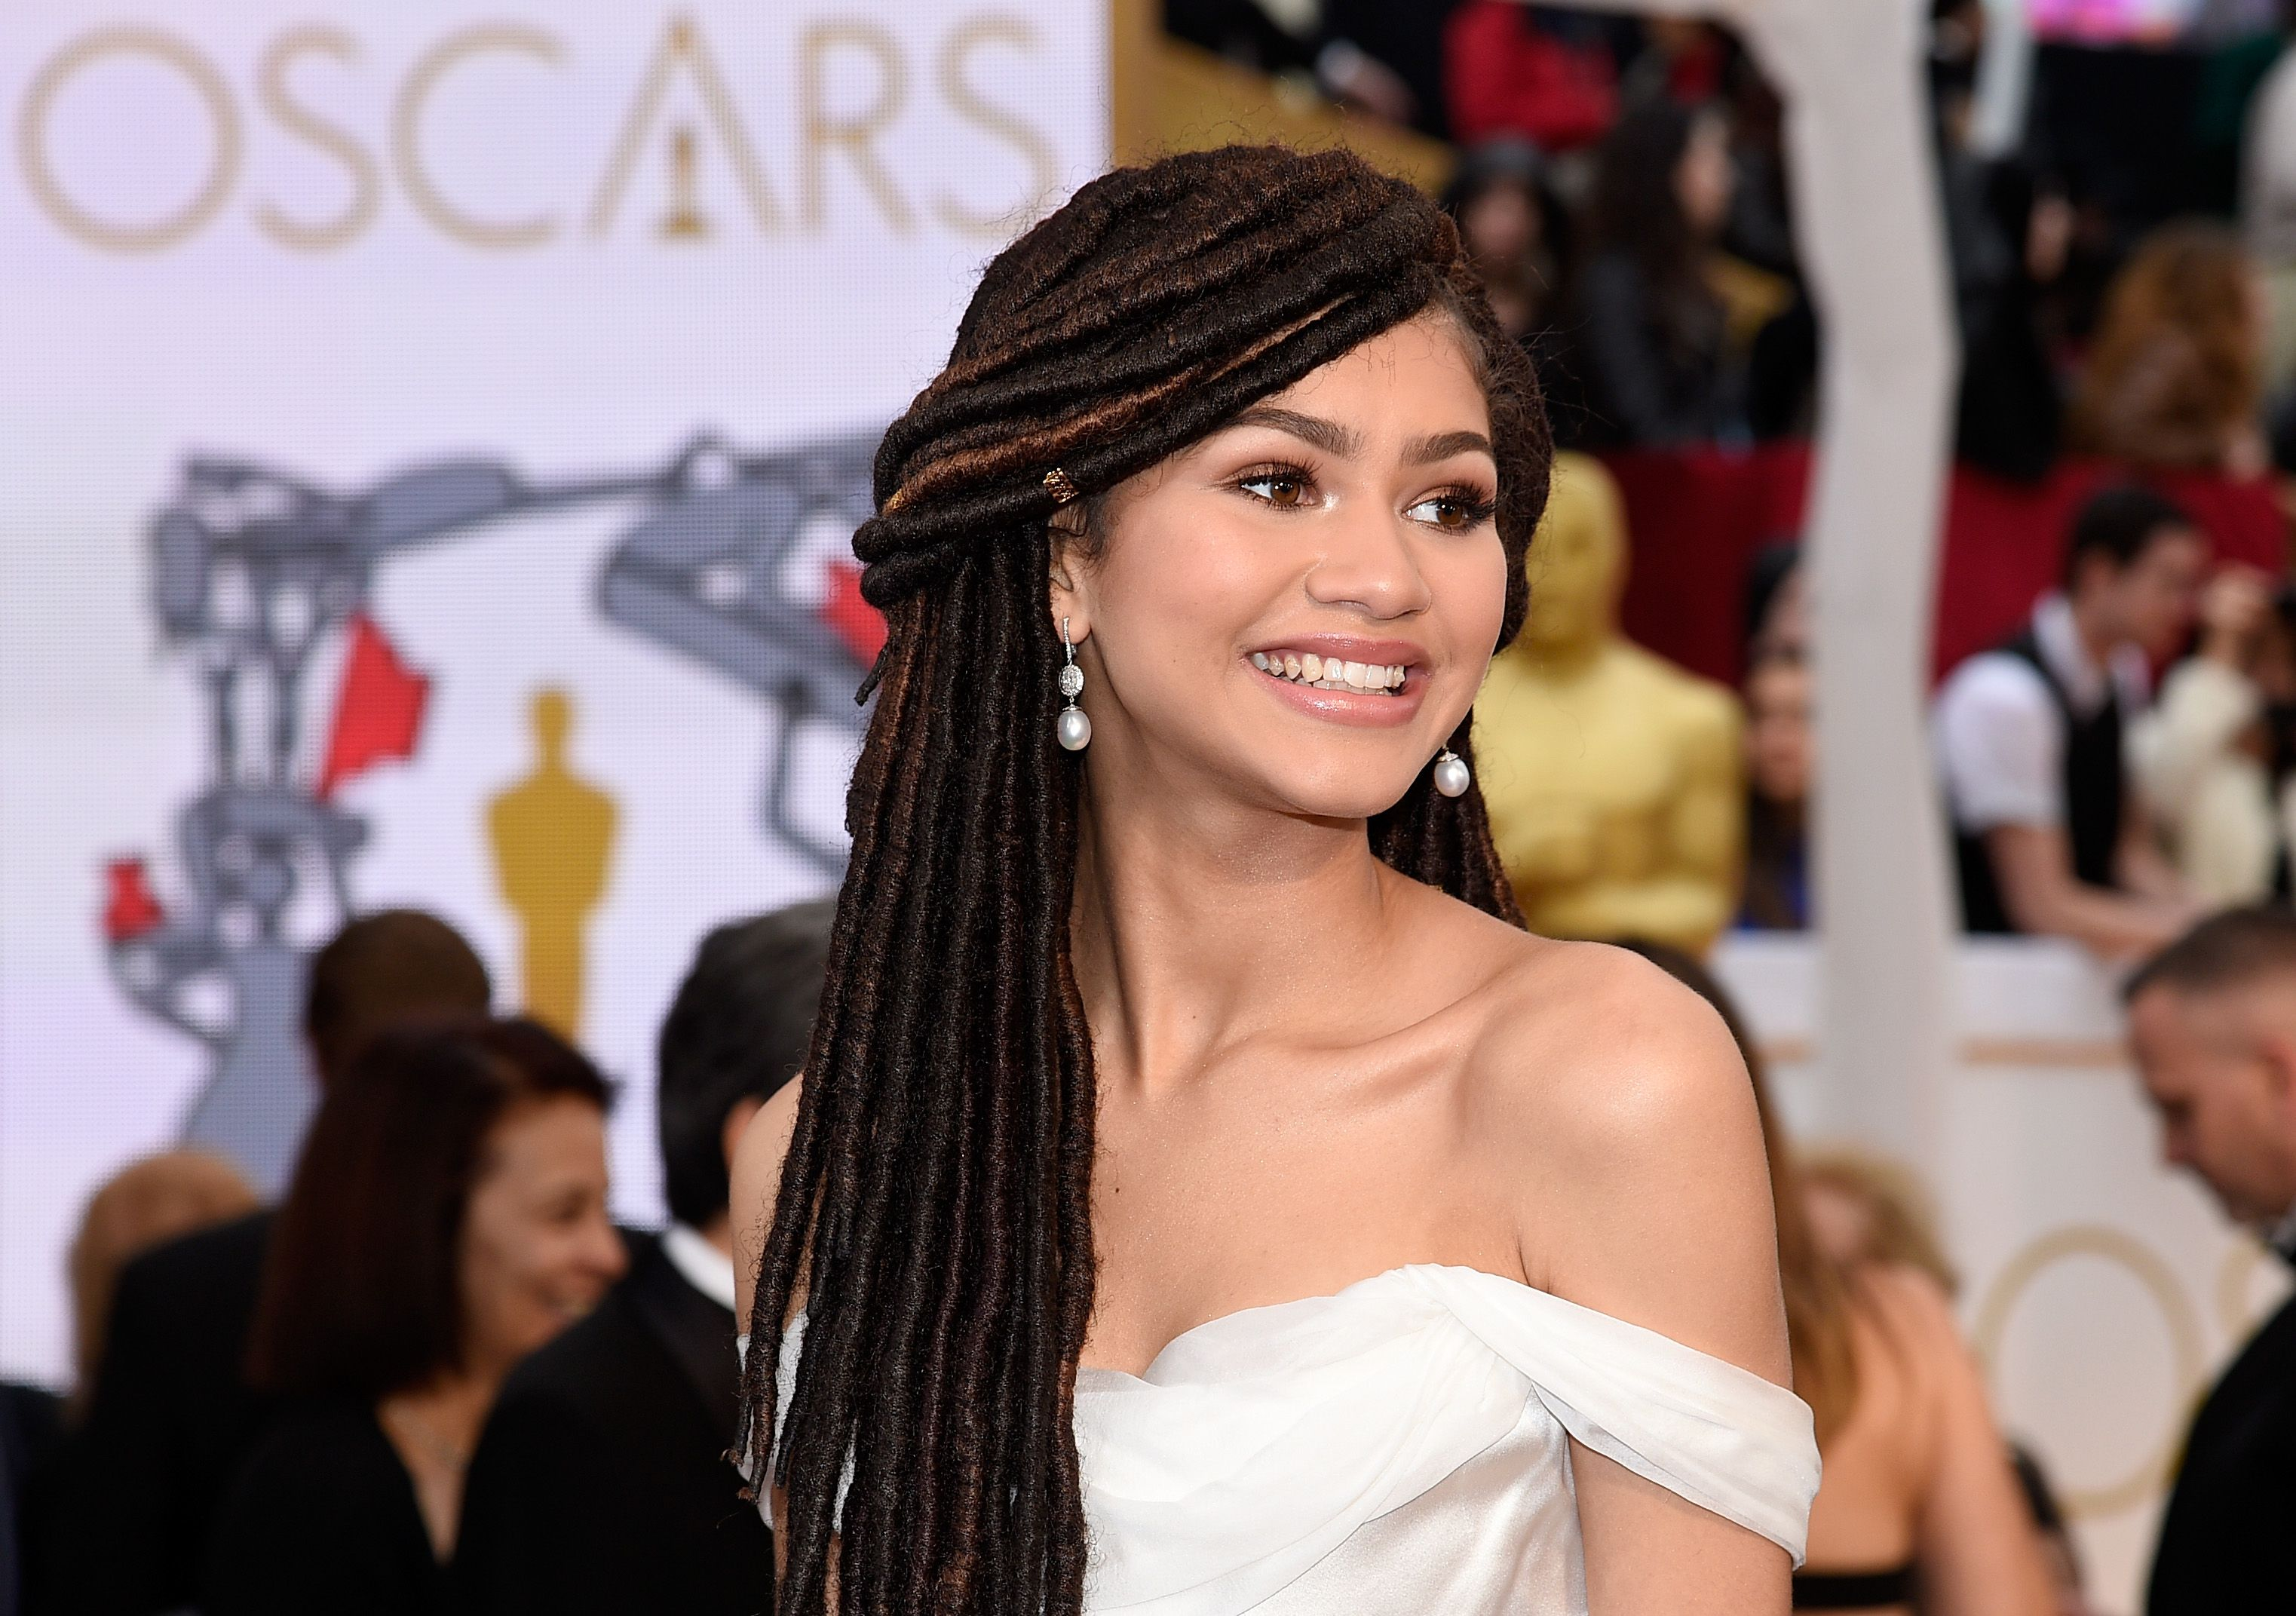 Zendaya's hairstyle wasn't accepted well / Getty Images